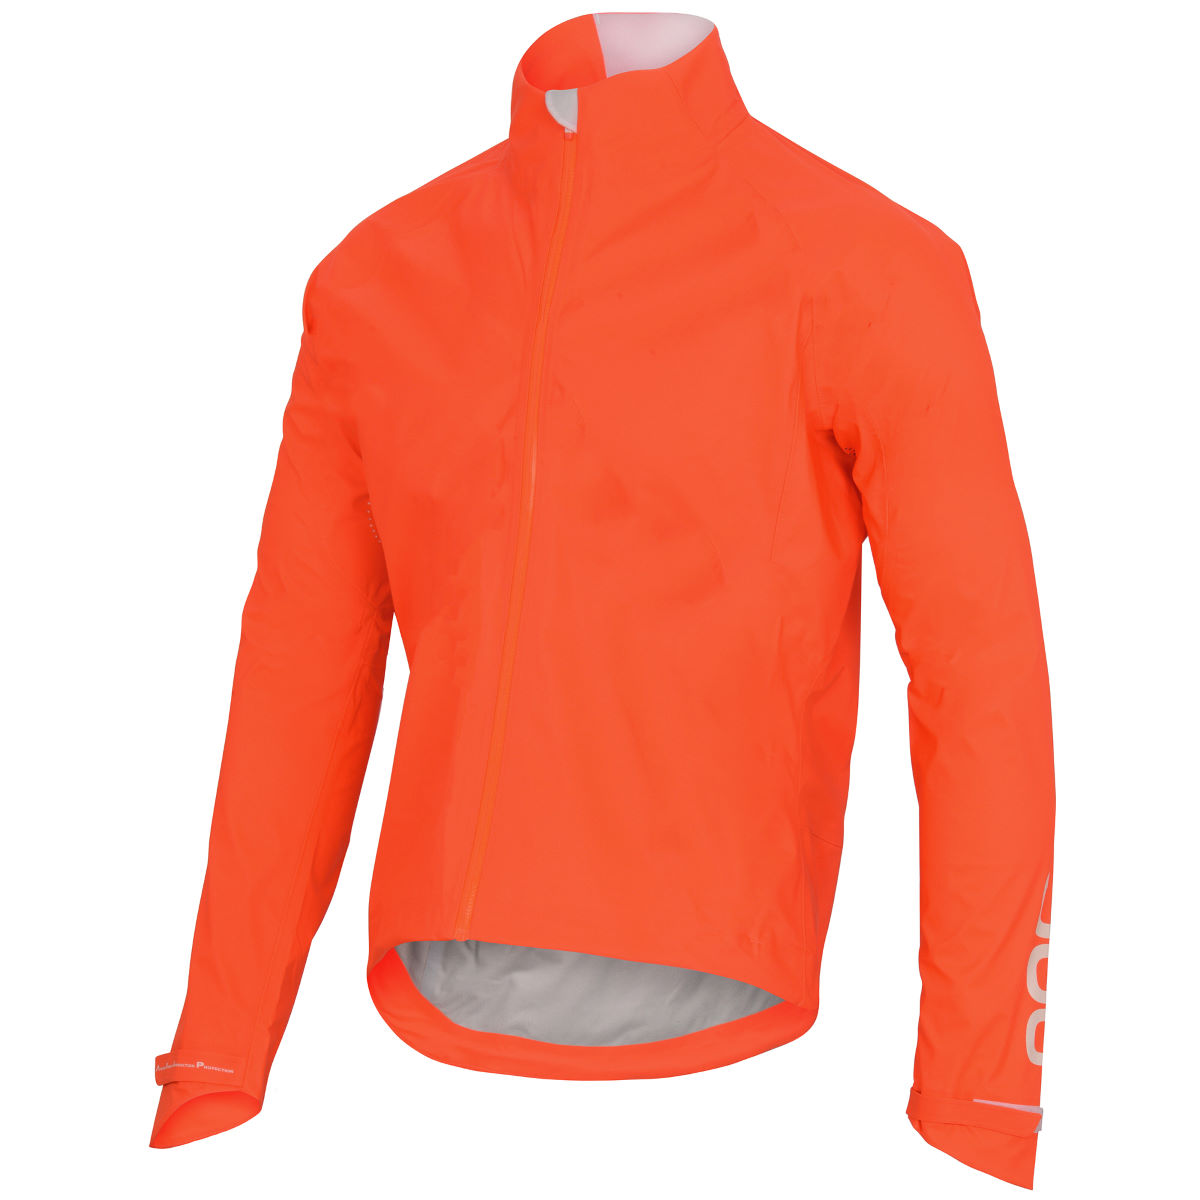 Veste POC AVIP Rain - Medium Zink Orange Vestes imperméables vélo